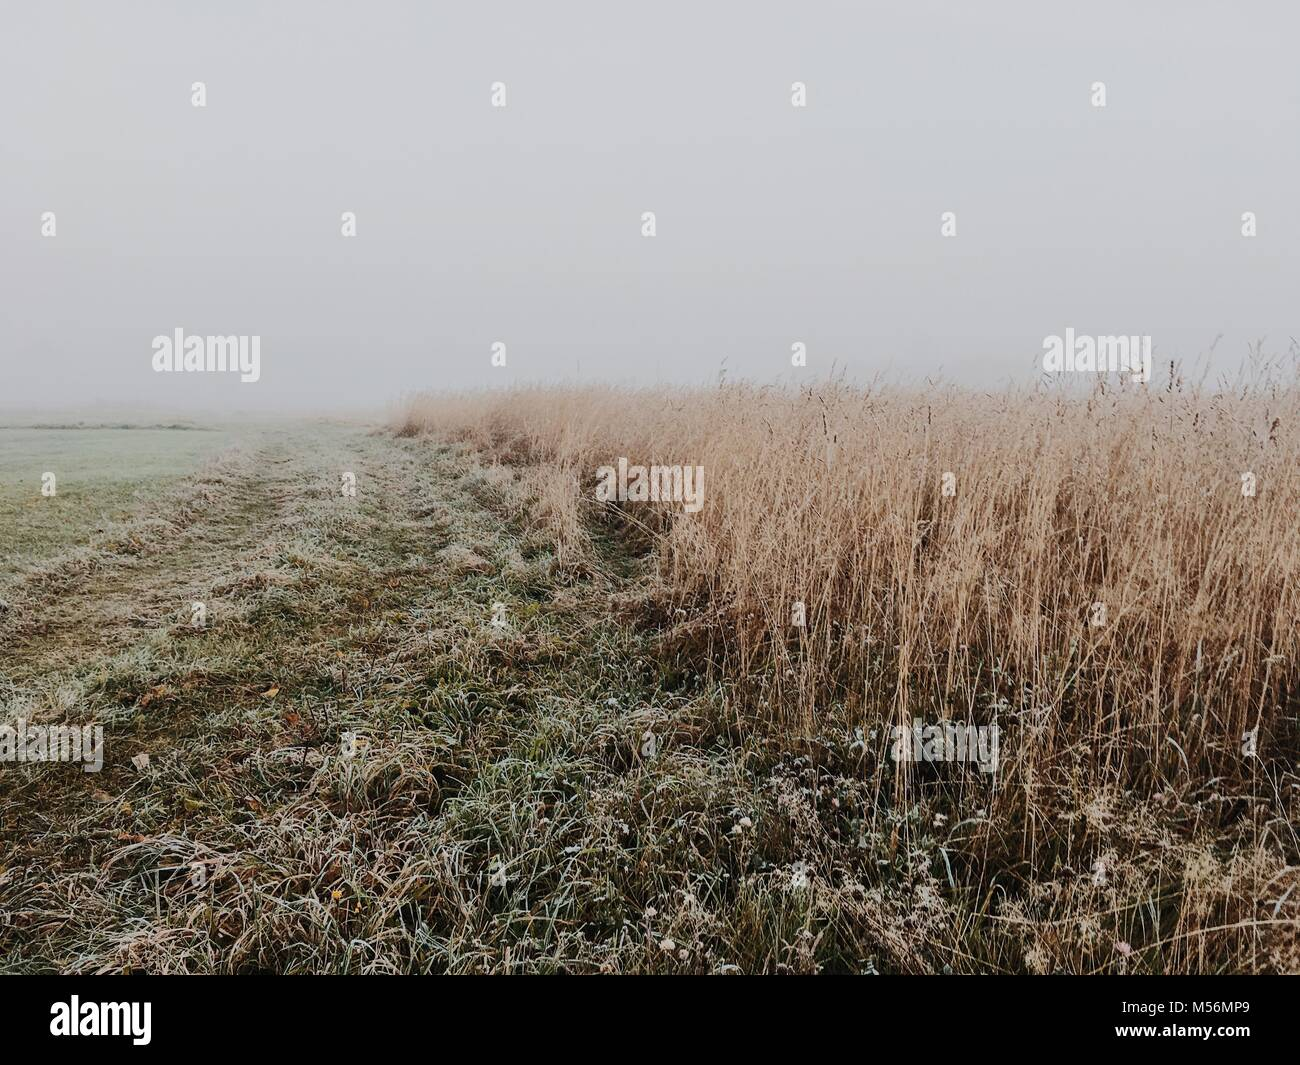 White nothing behind wheat field. Harsh autumn scene with fog. Stock Photo